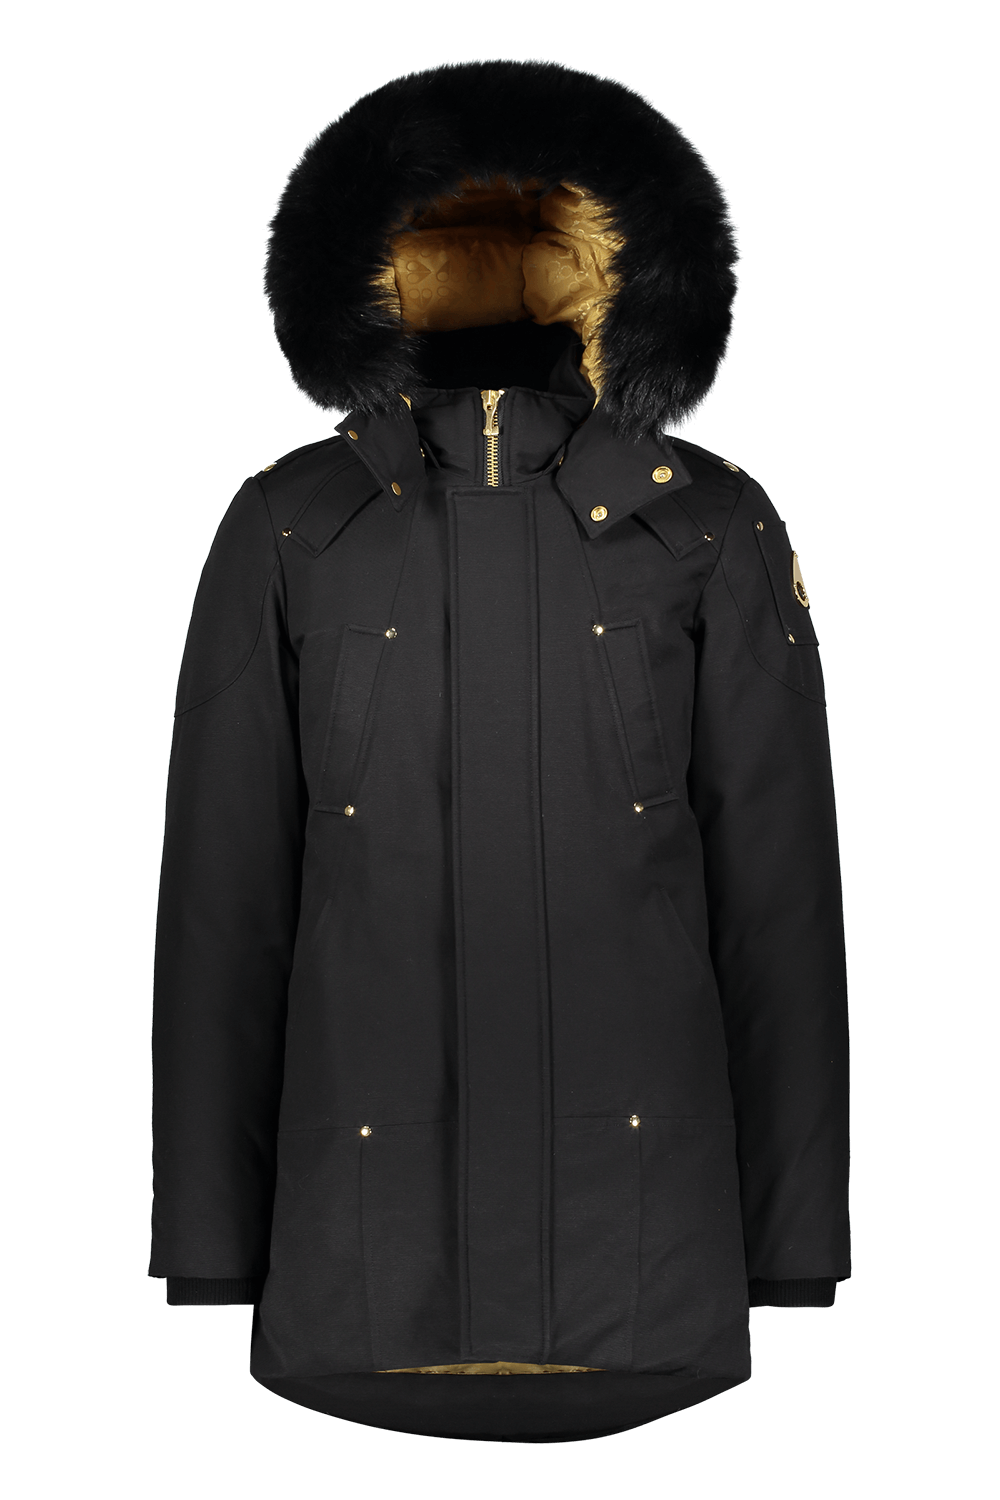 STAG LAKE PARKA